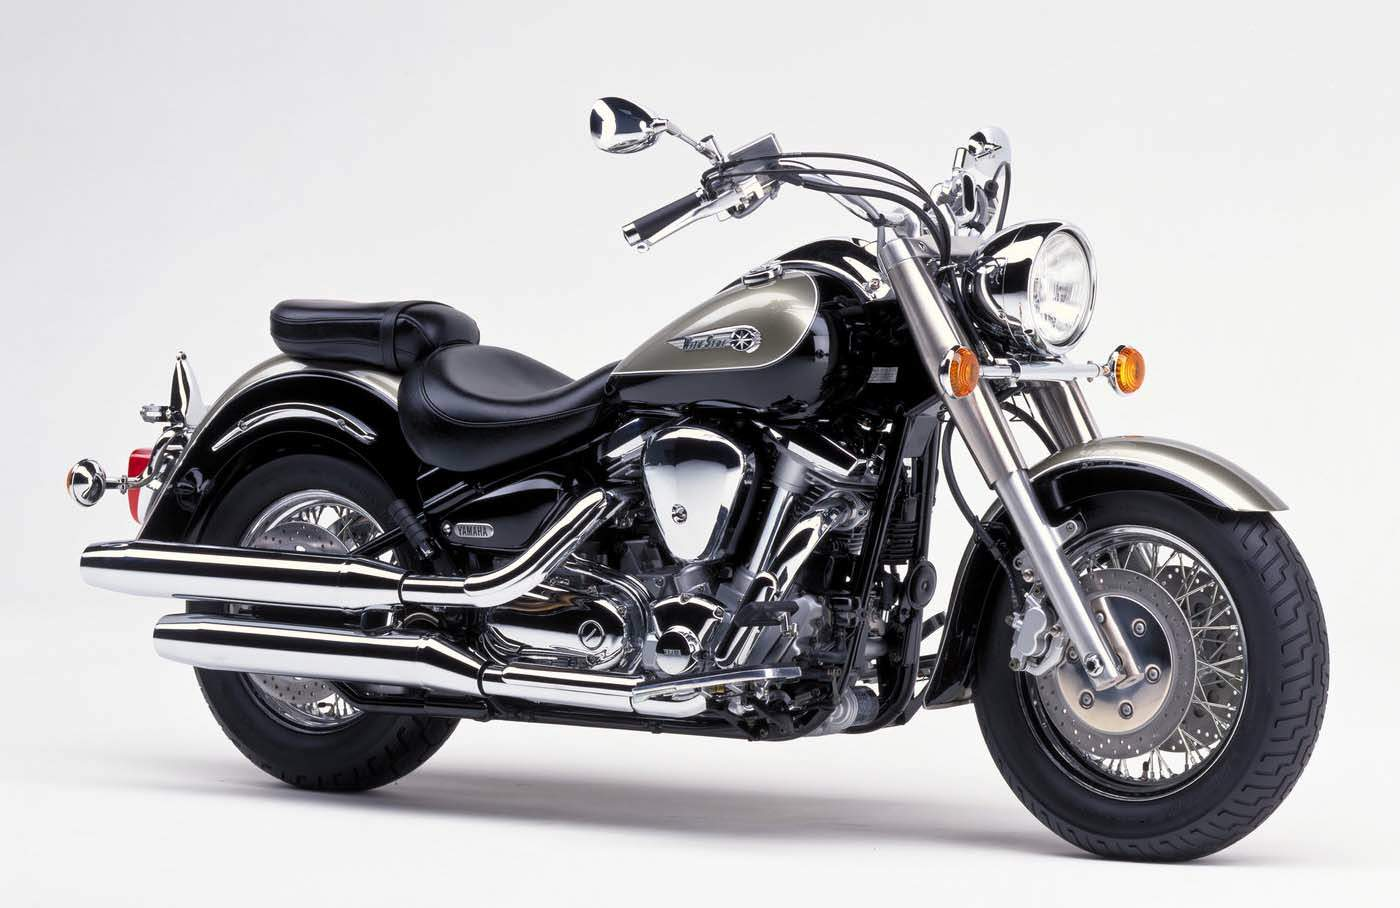 Мотоцикл Yamaha XV 1600A Road Star / Wind Star 2002